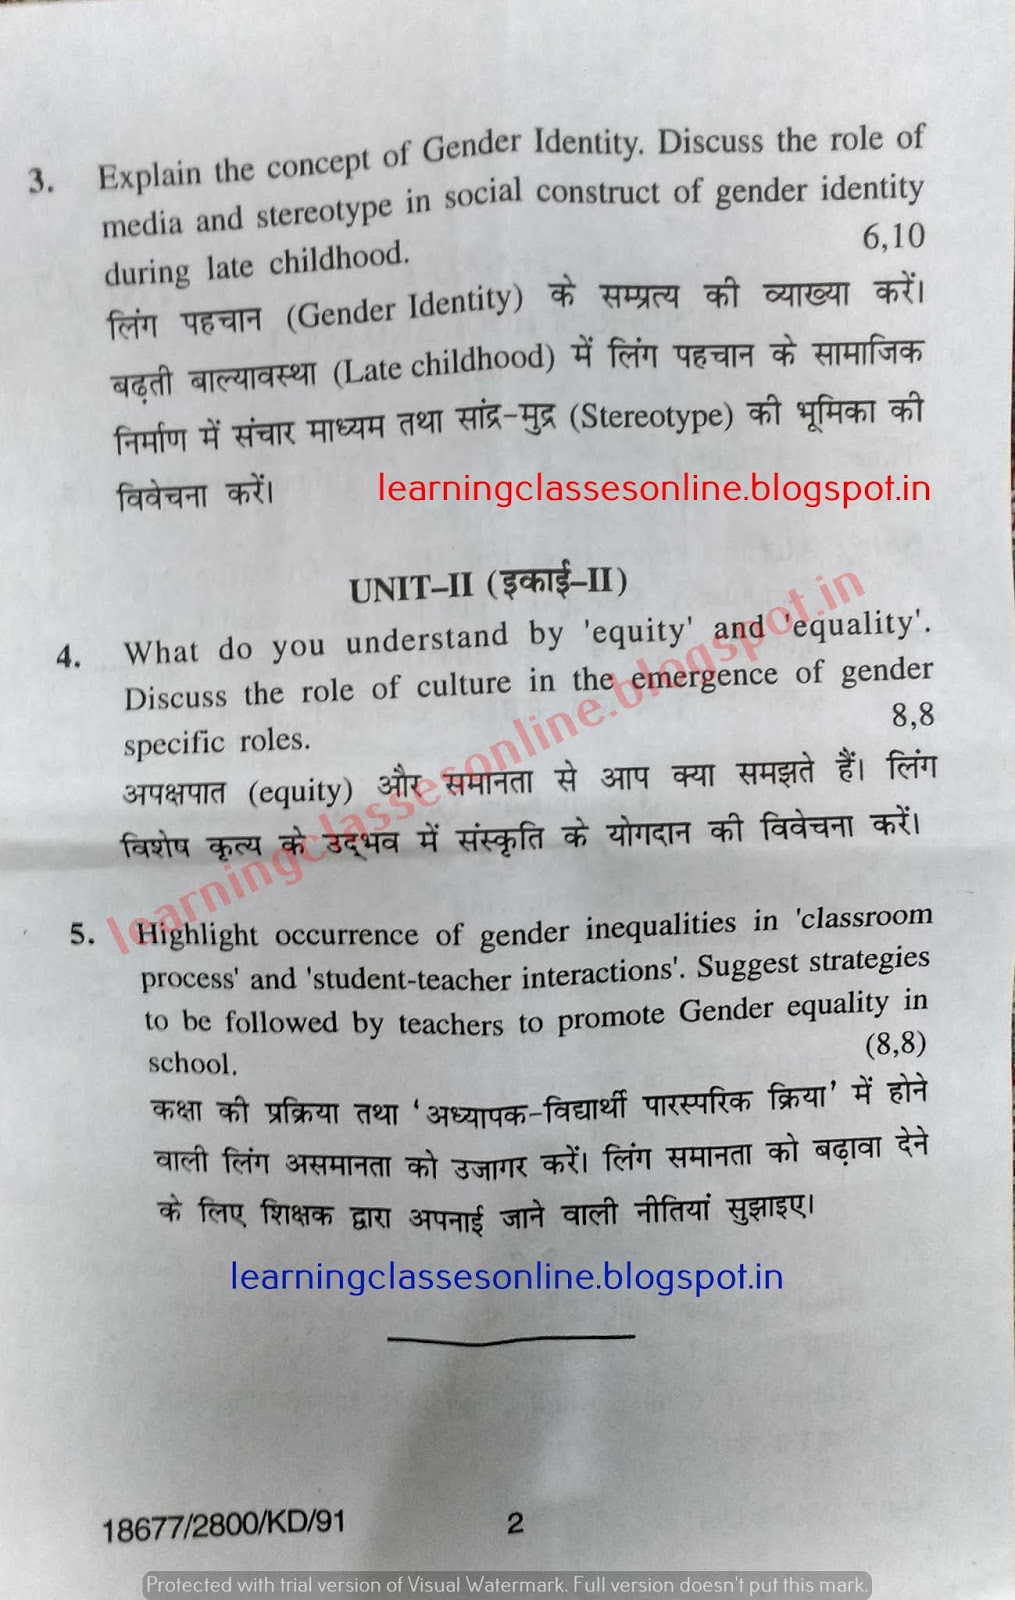 Gender school and society 2017 Question Paper